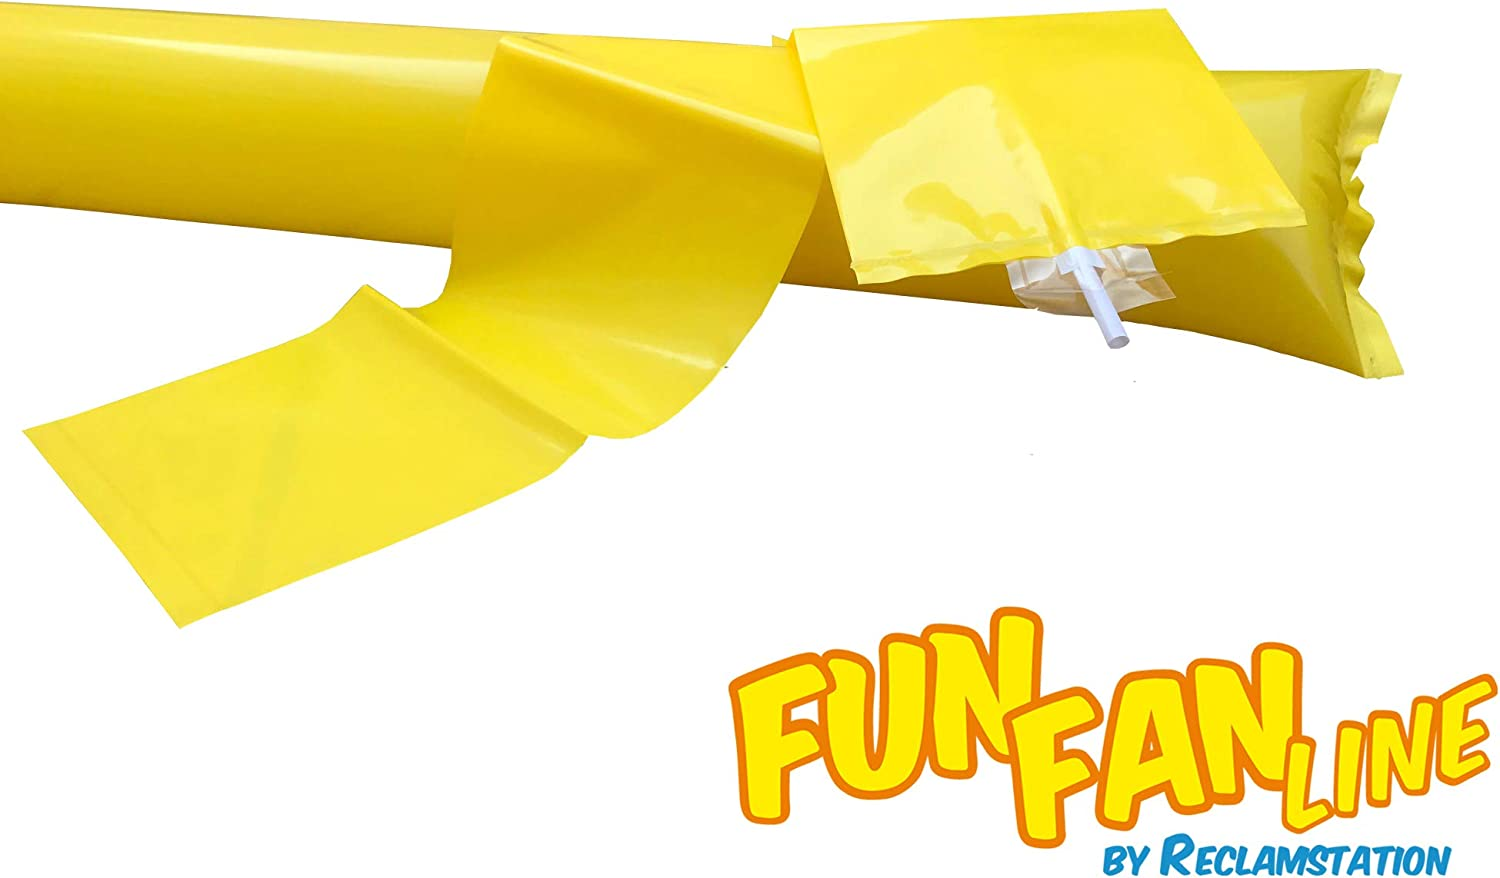 Noise Sticks for Stadium or Parties. 100 Pairs Bam Bam Thunder Sticks Boom Sticks for Cheerleading FUN FAN LINE Noise Makers for Sporting Events